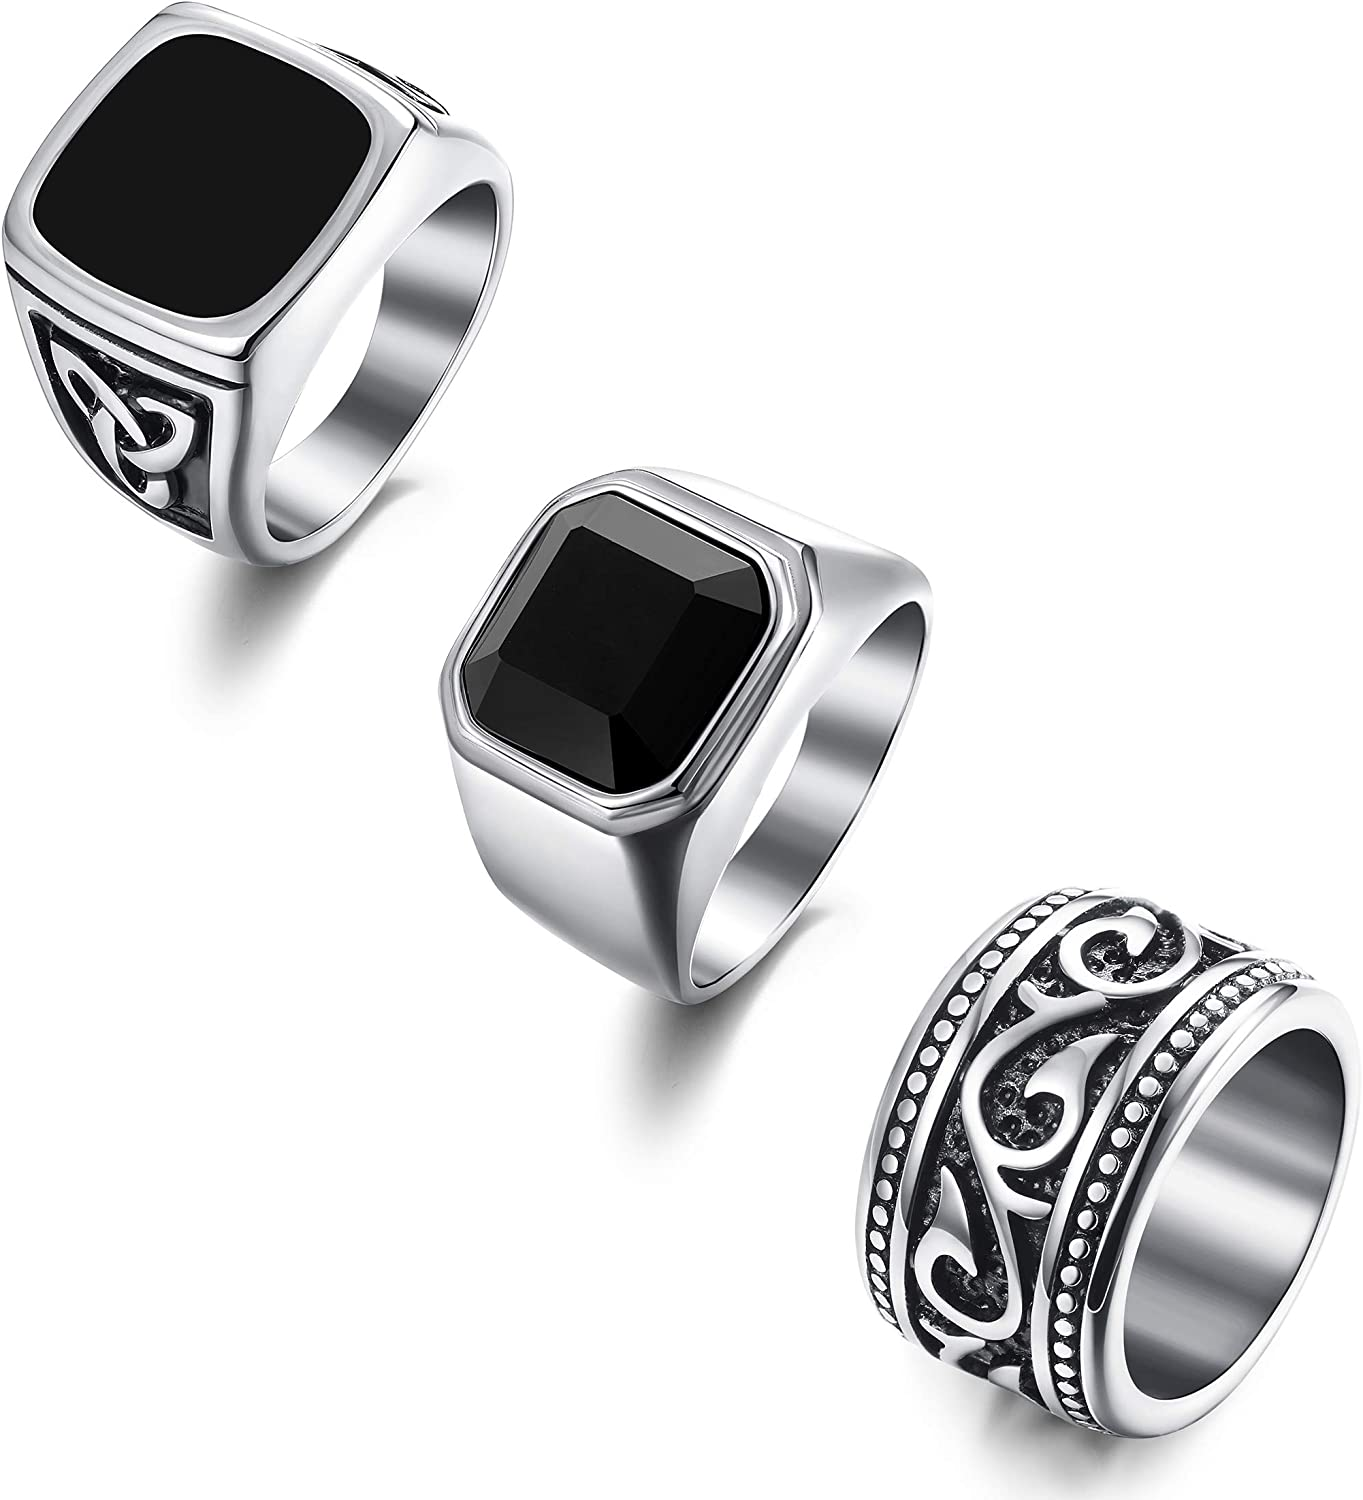 Florideco 3Pcs Stainless Steel Rings for Men Vintage Biker Band Rings Set Wide Signet Ring Size 7-13